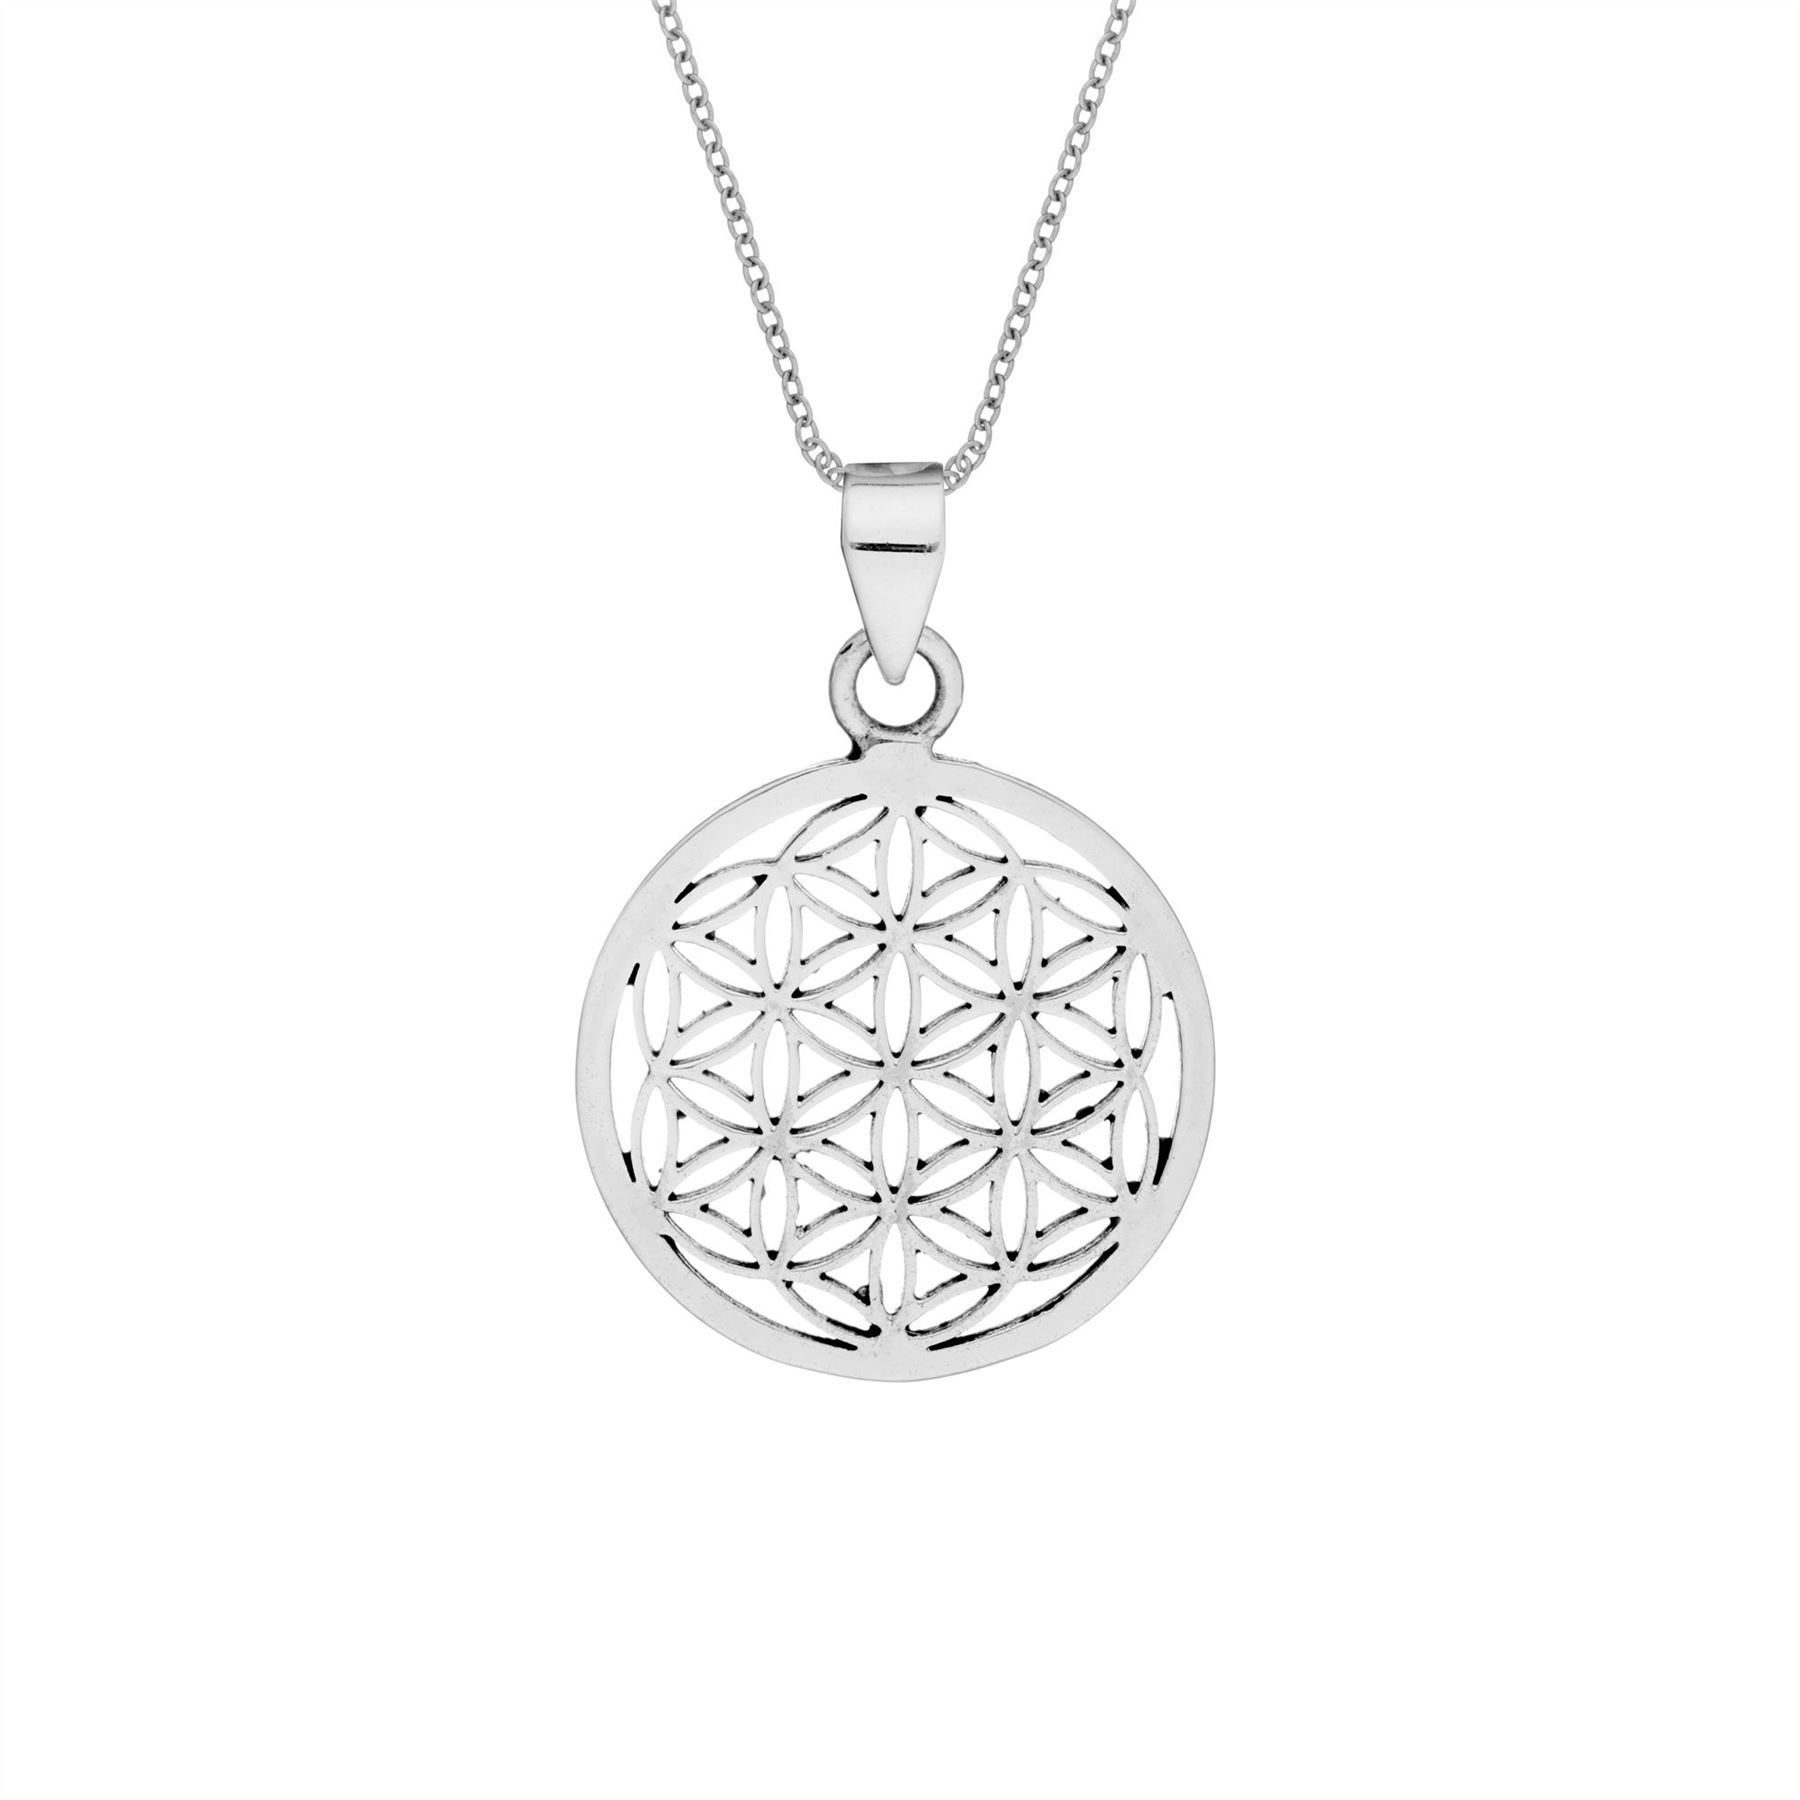 The Flower of Life Pendant Necklace Sterling Silver